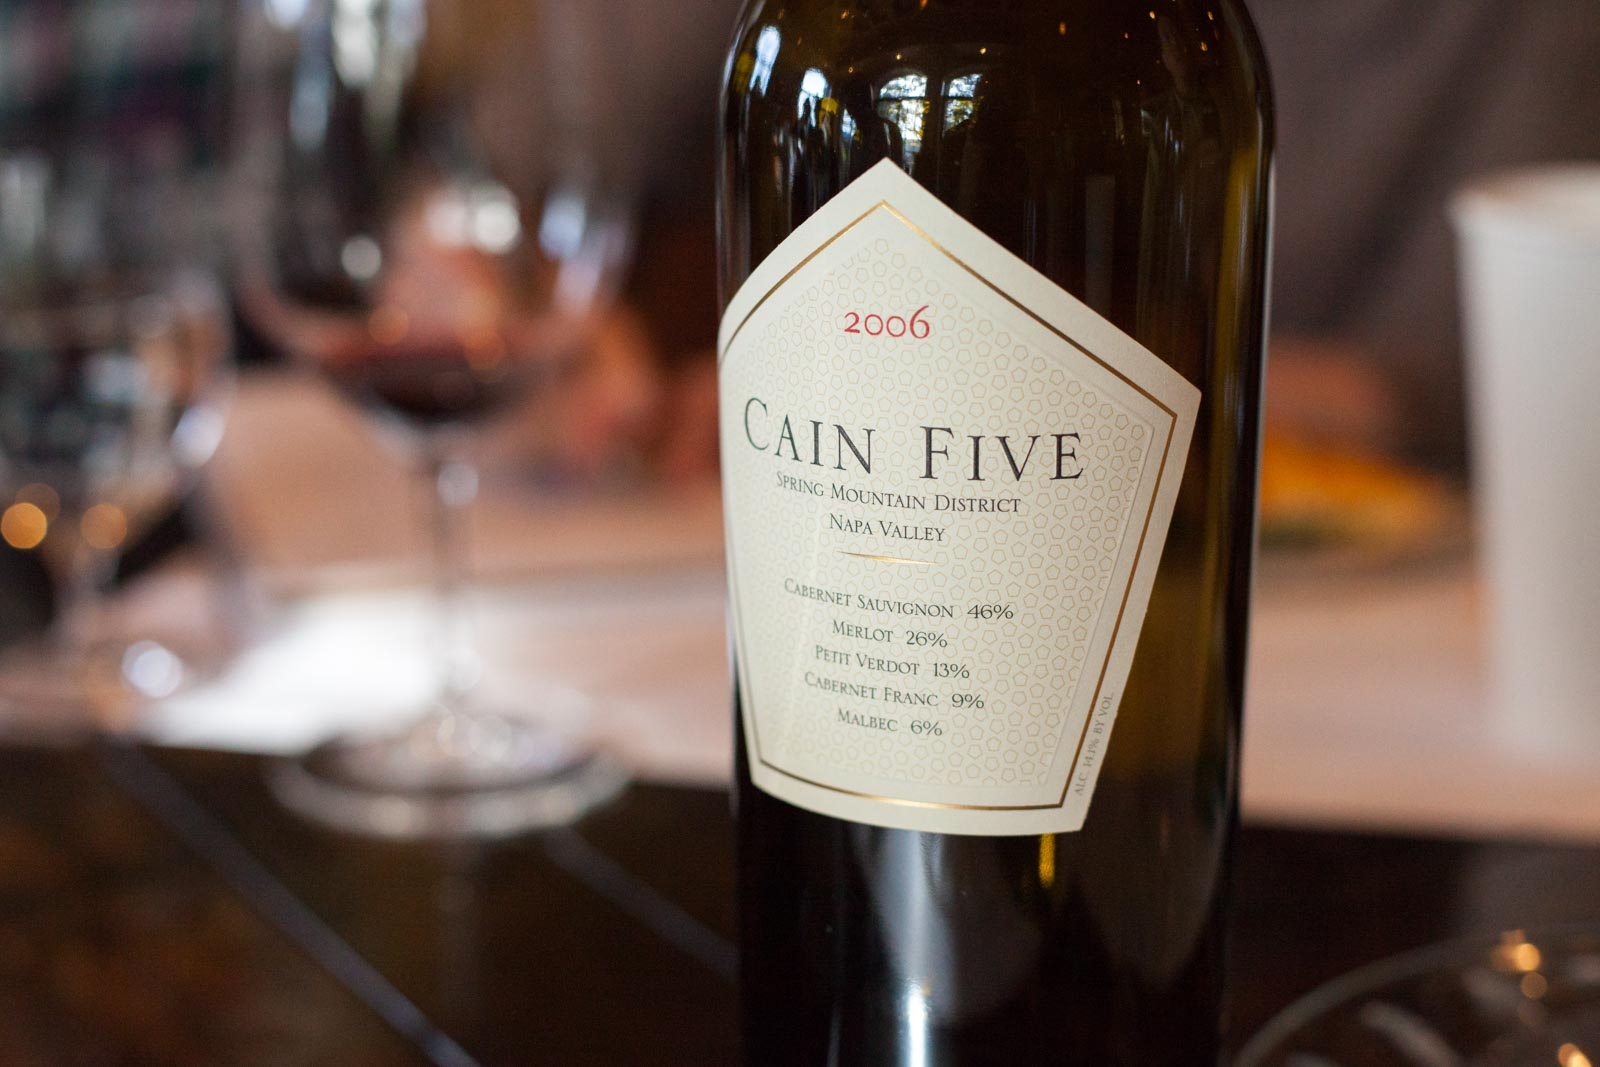 Cain Five wine ©Kevin Day/Opening a Bottle